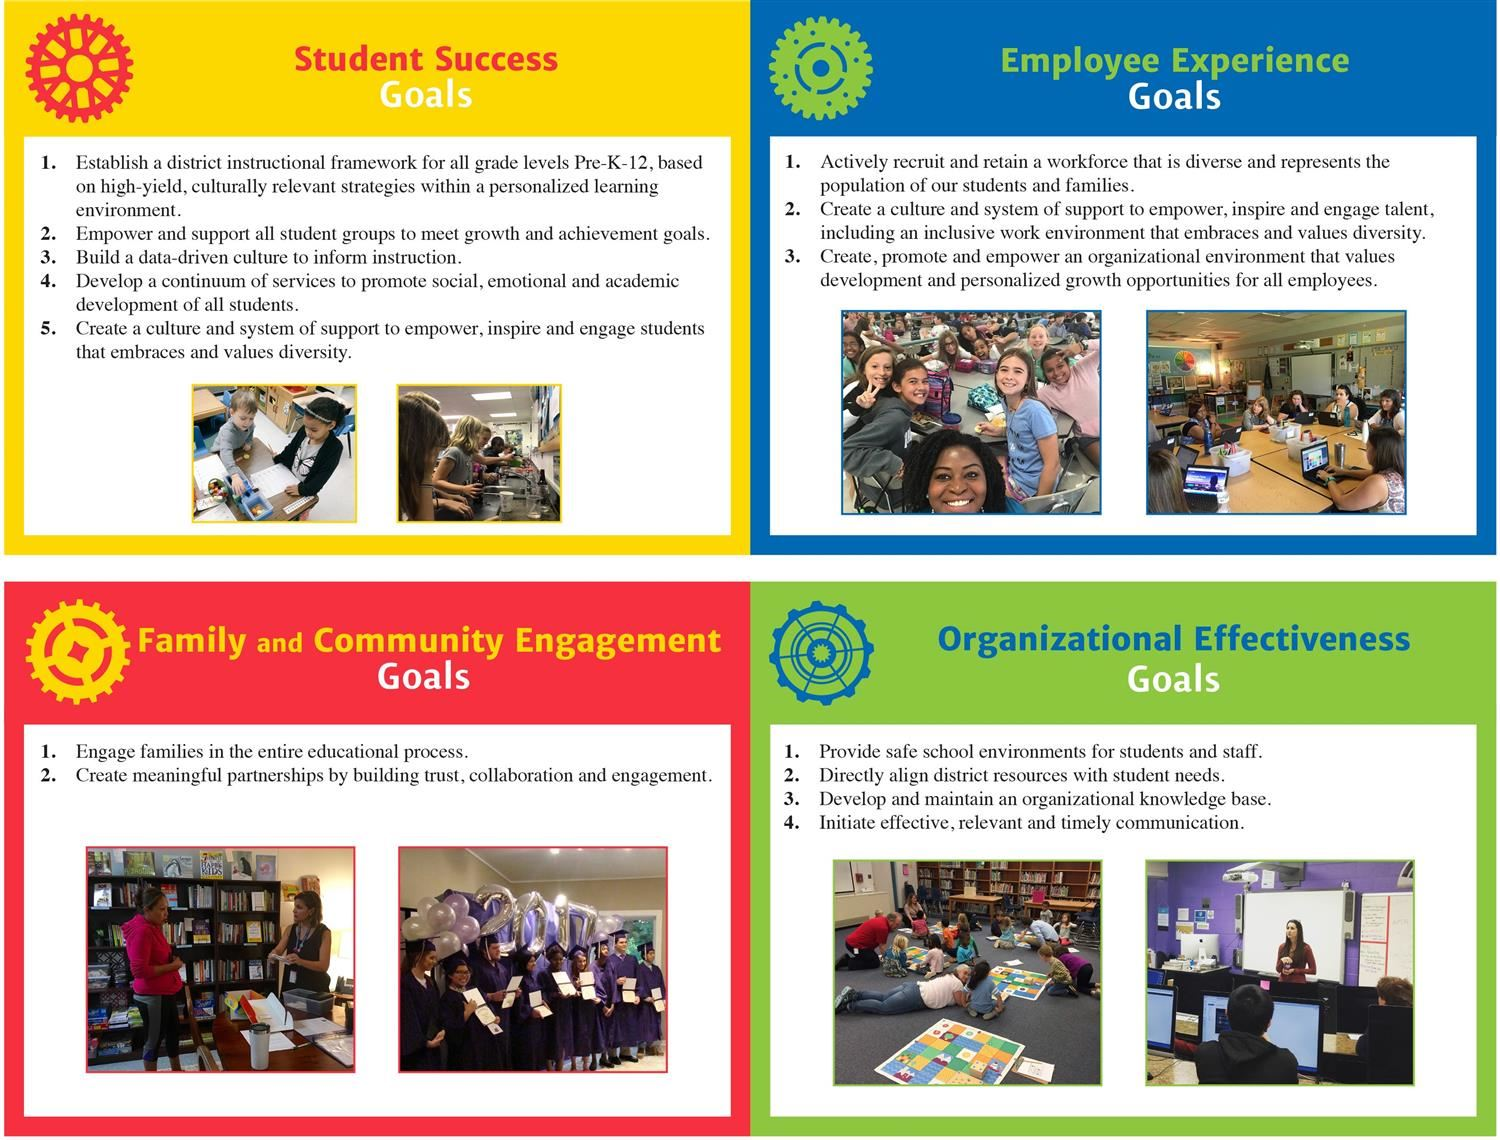 CHCCS Strategic Goals 2018-2021 Image 2